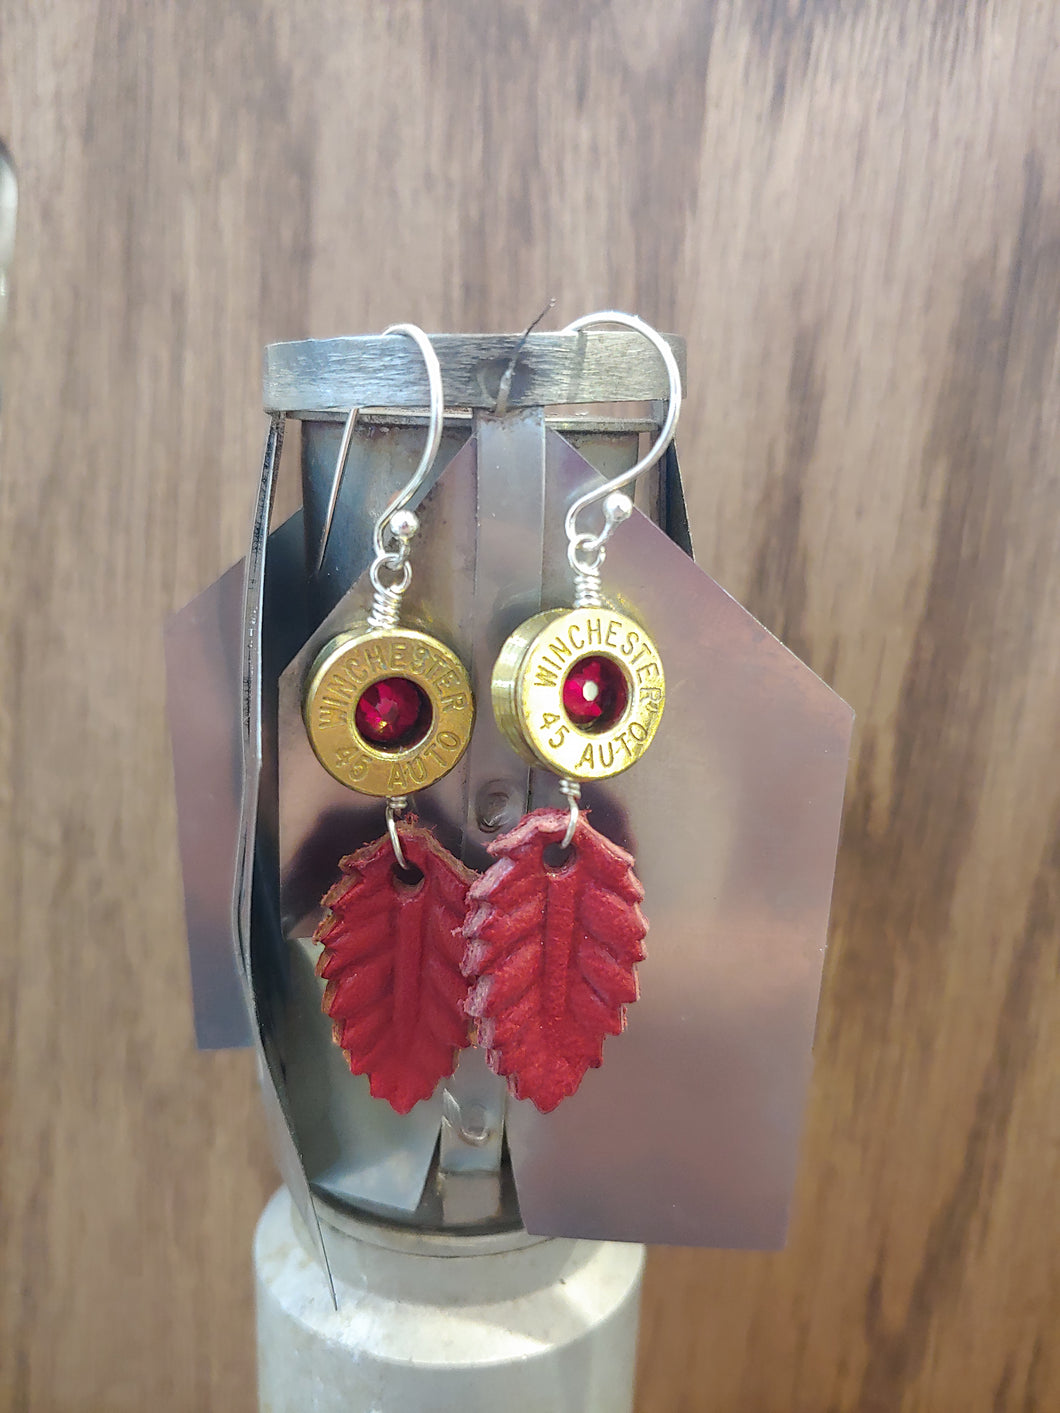 Brass .45 Bullet Casings with Red Leather Leaf